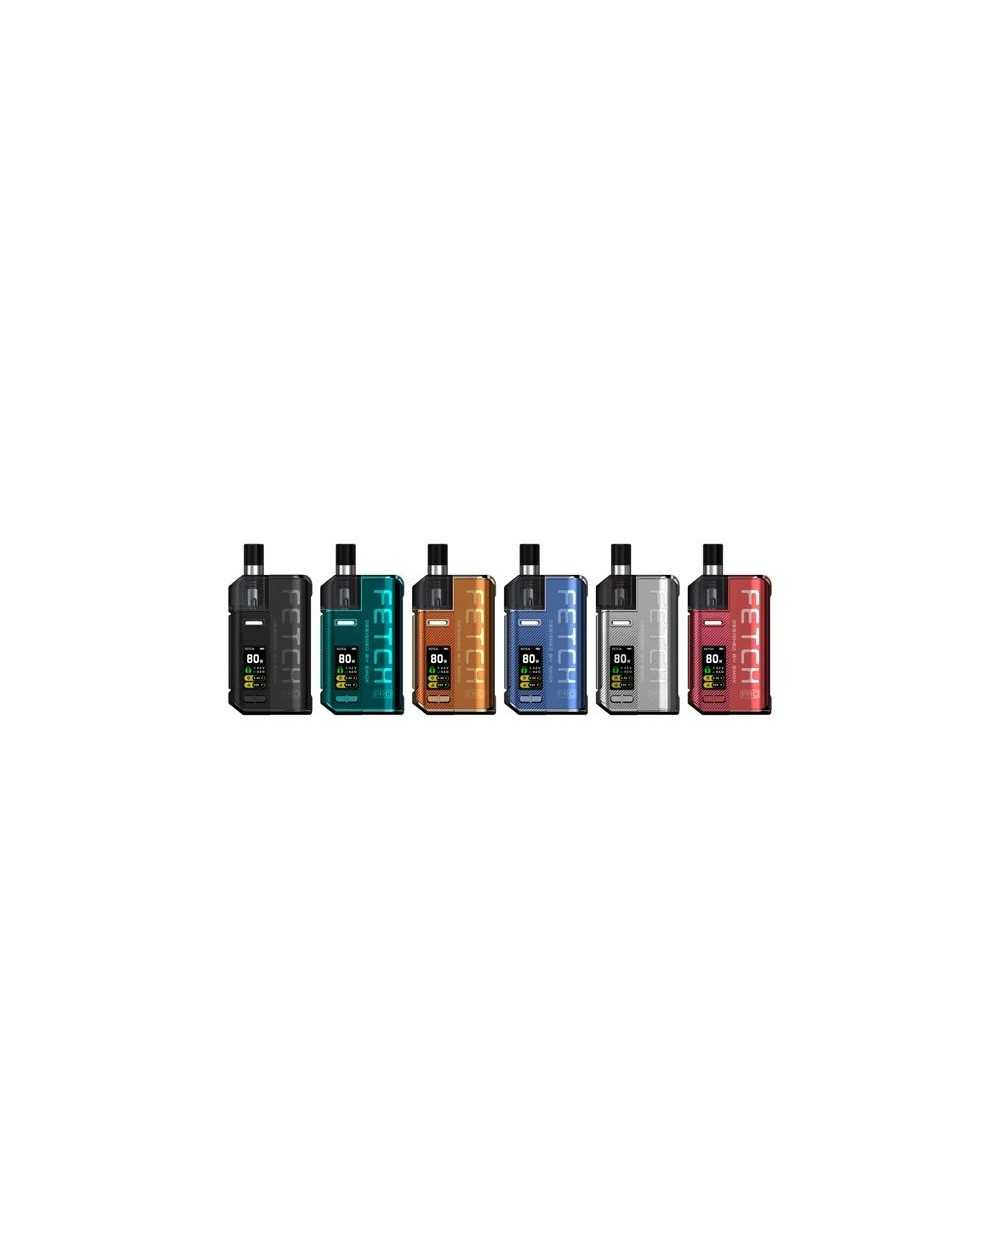 Kit Fetch Pro - Smoktech-1